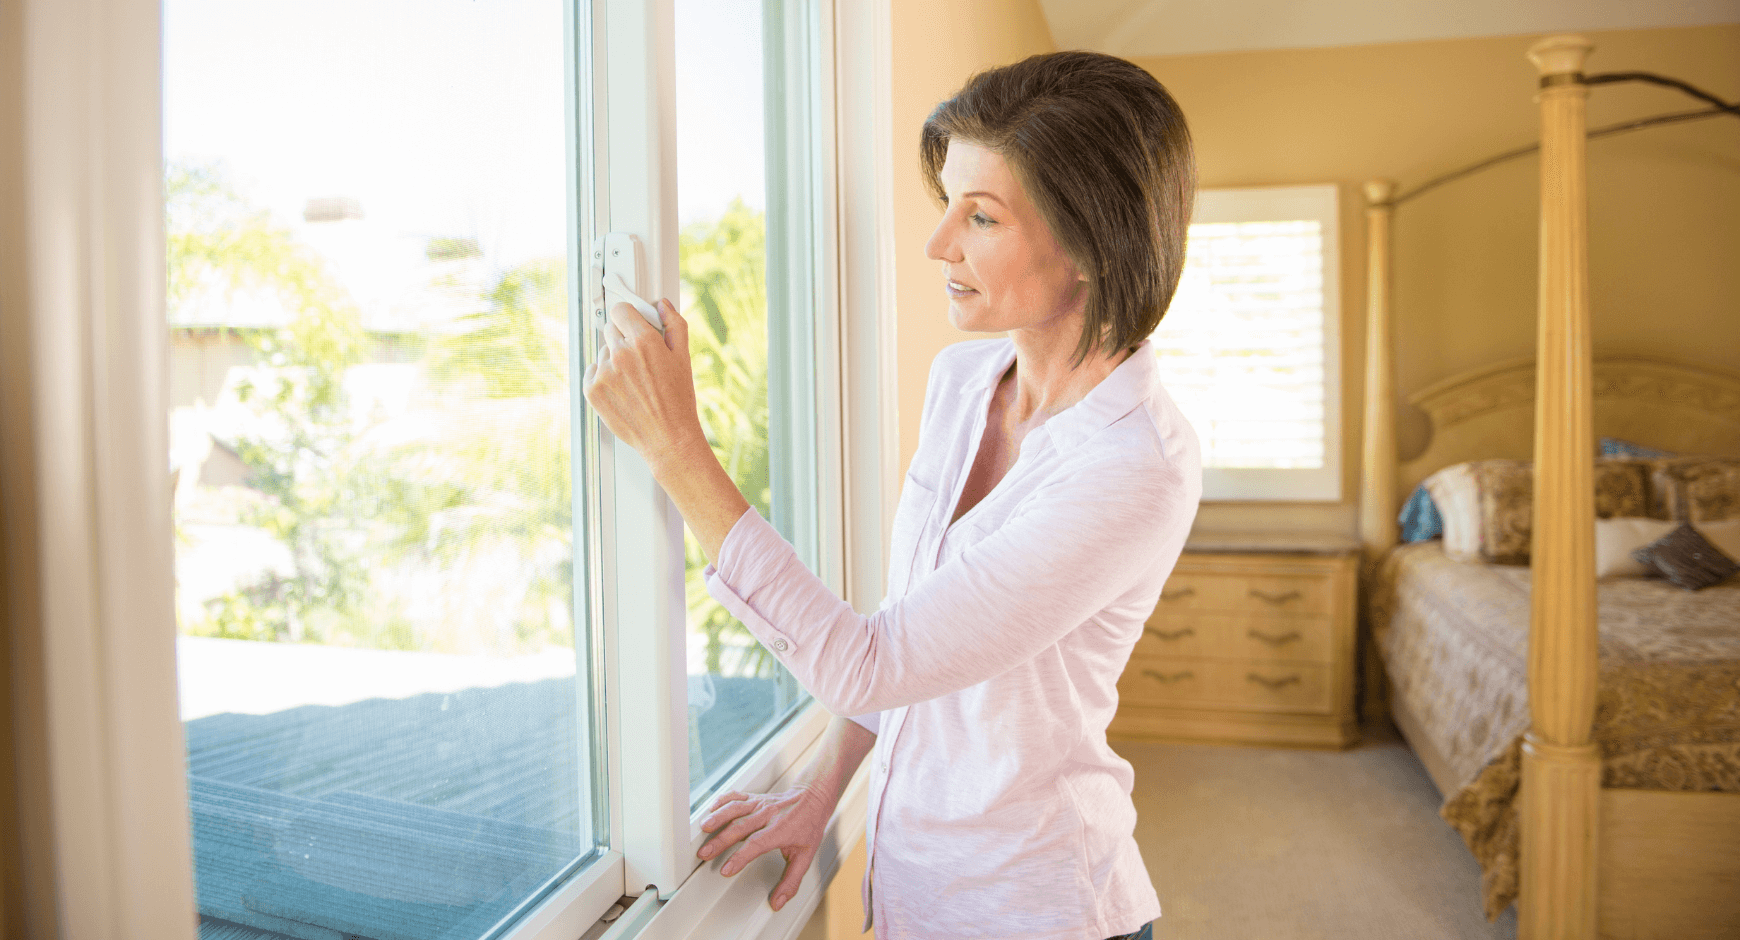 Image of a woman opening a gliding window